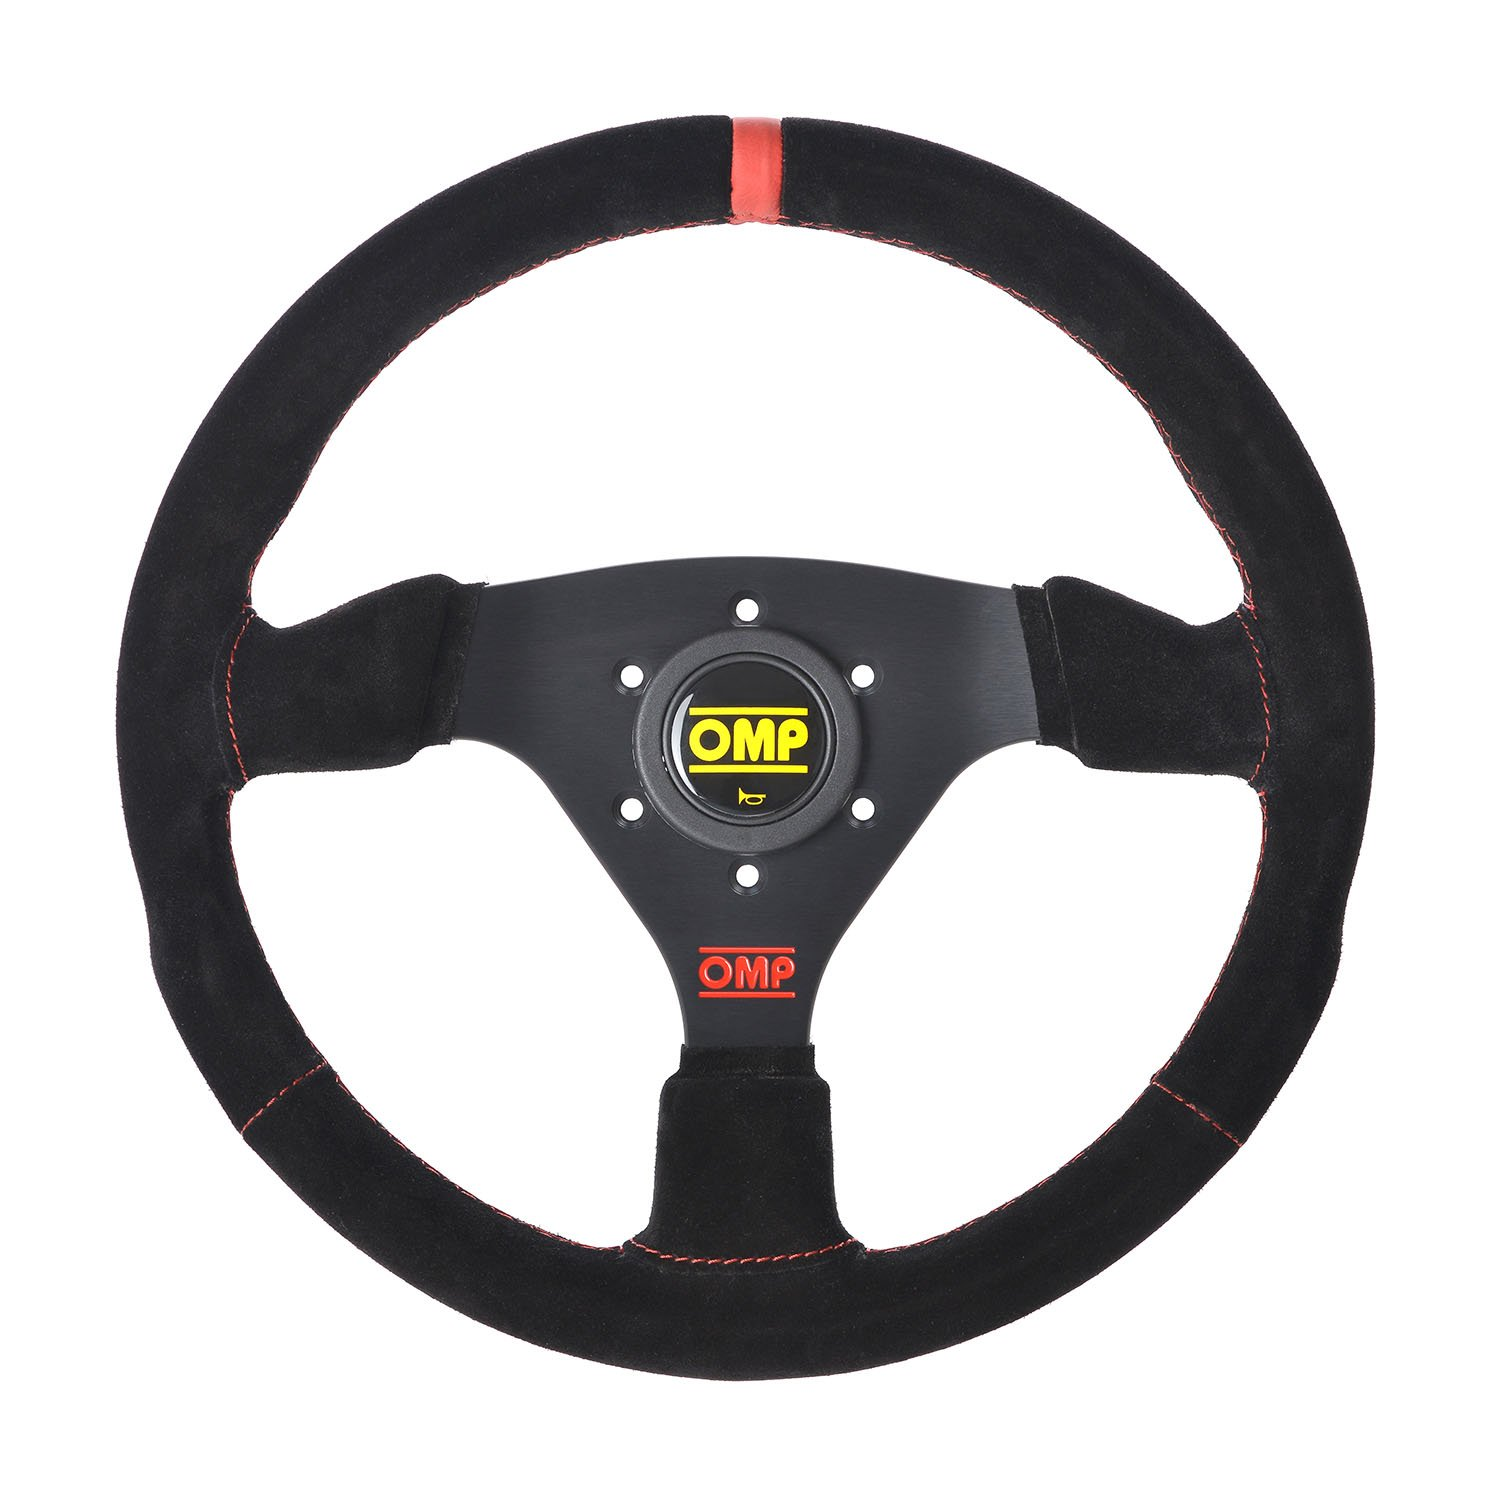 Special Edition! OMP Racing Targa Steering Wheel Suede Leather 330mm Red Trim & Logo!